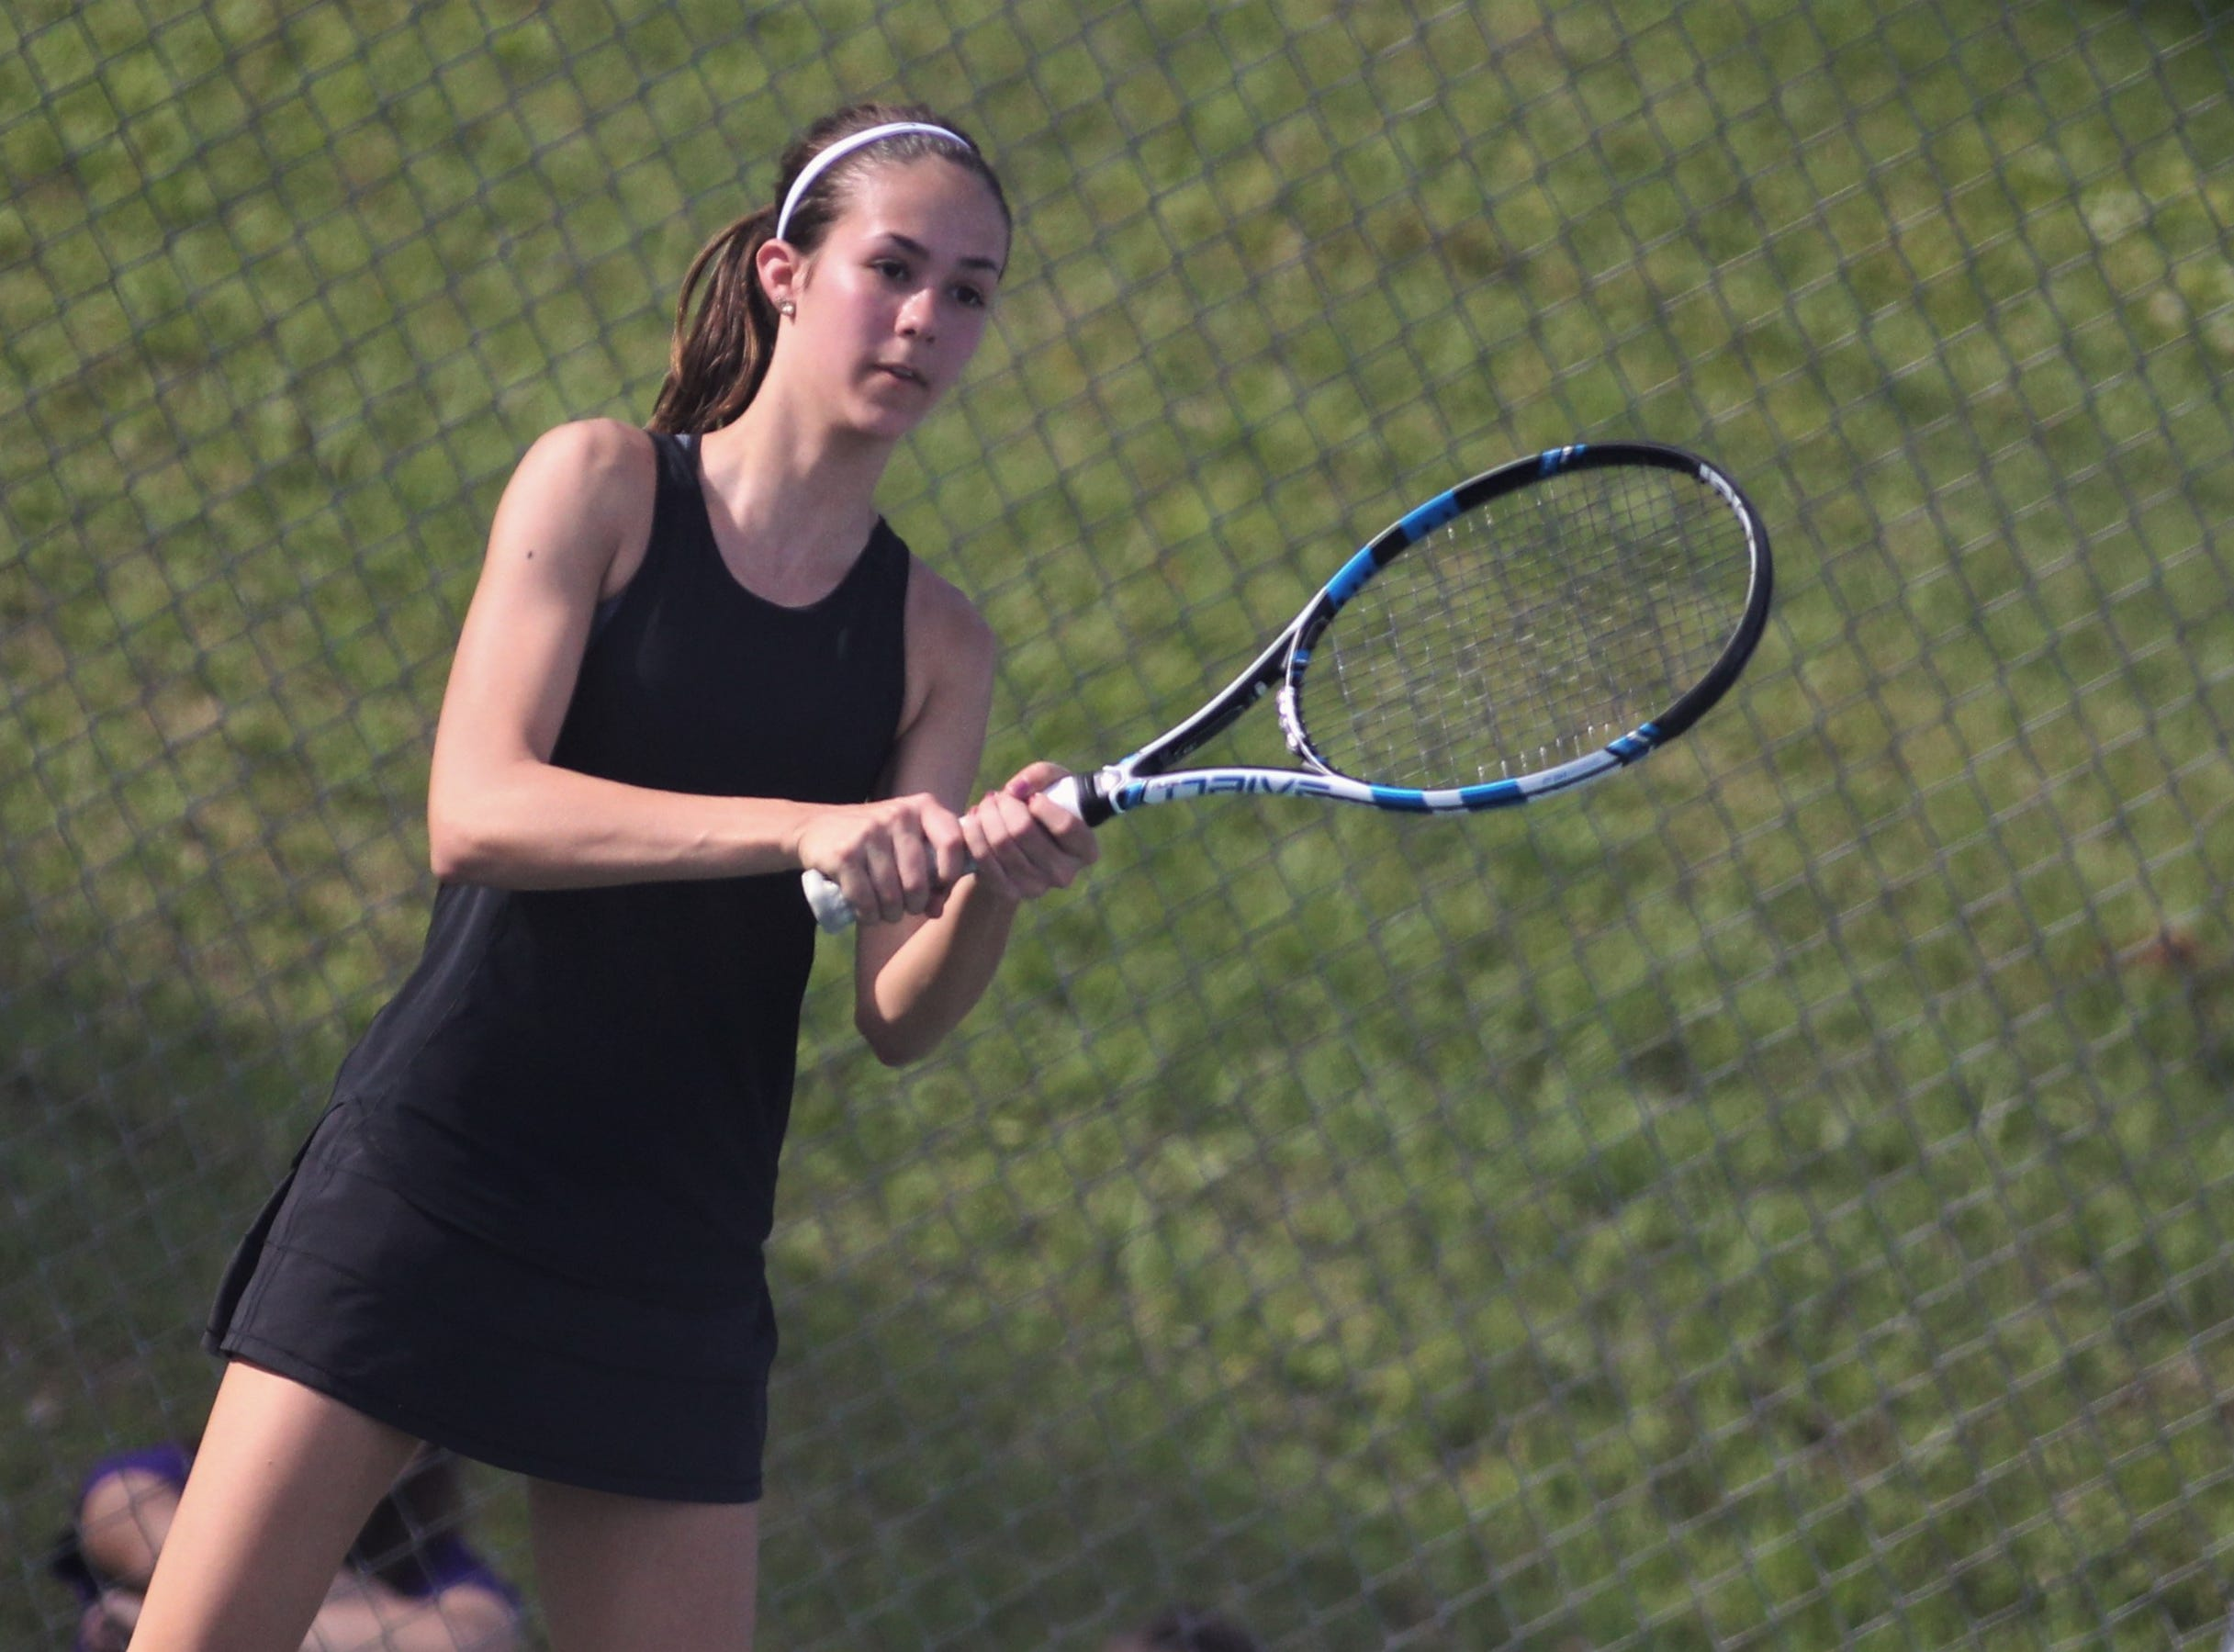 Chiles sophomore Harli Neshat plays during the boys and girls tennis city tournament at Tom Brown Park on March 13, 2019.